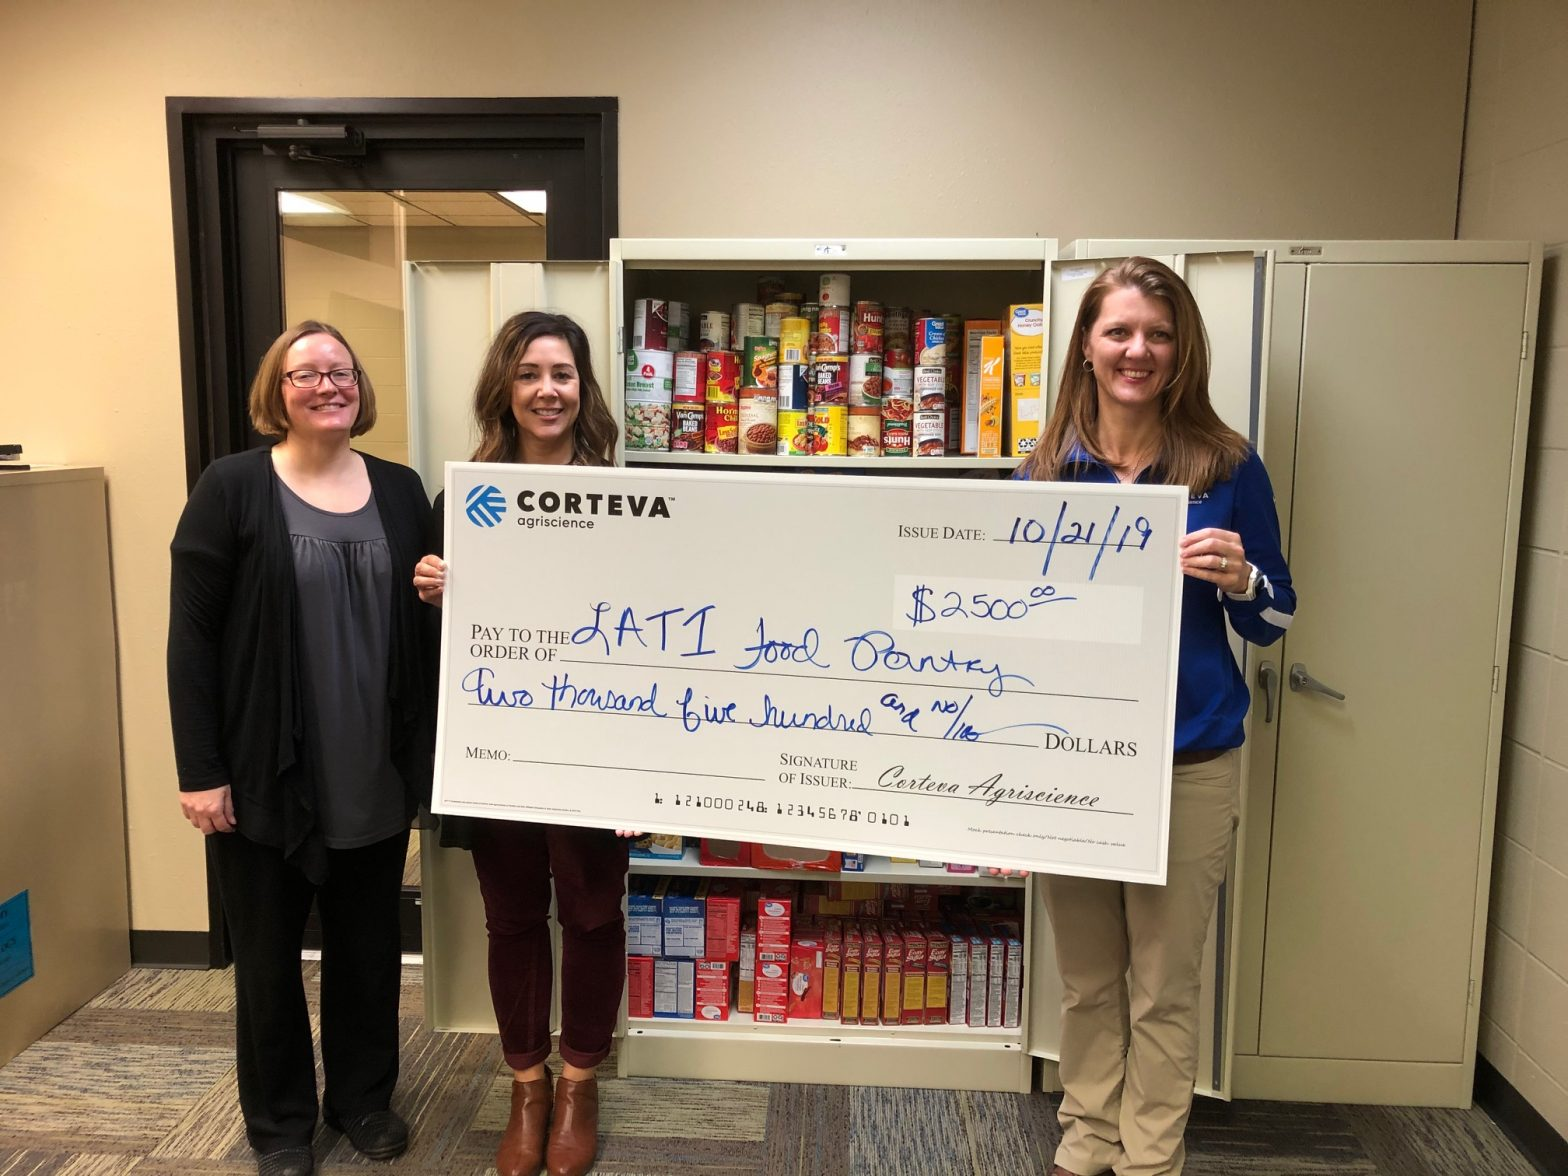 Food Pantry Corteva Donation 10 19